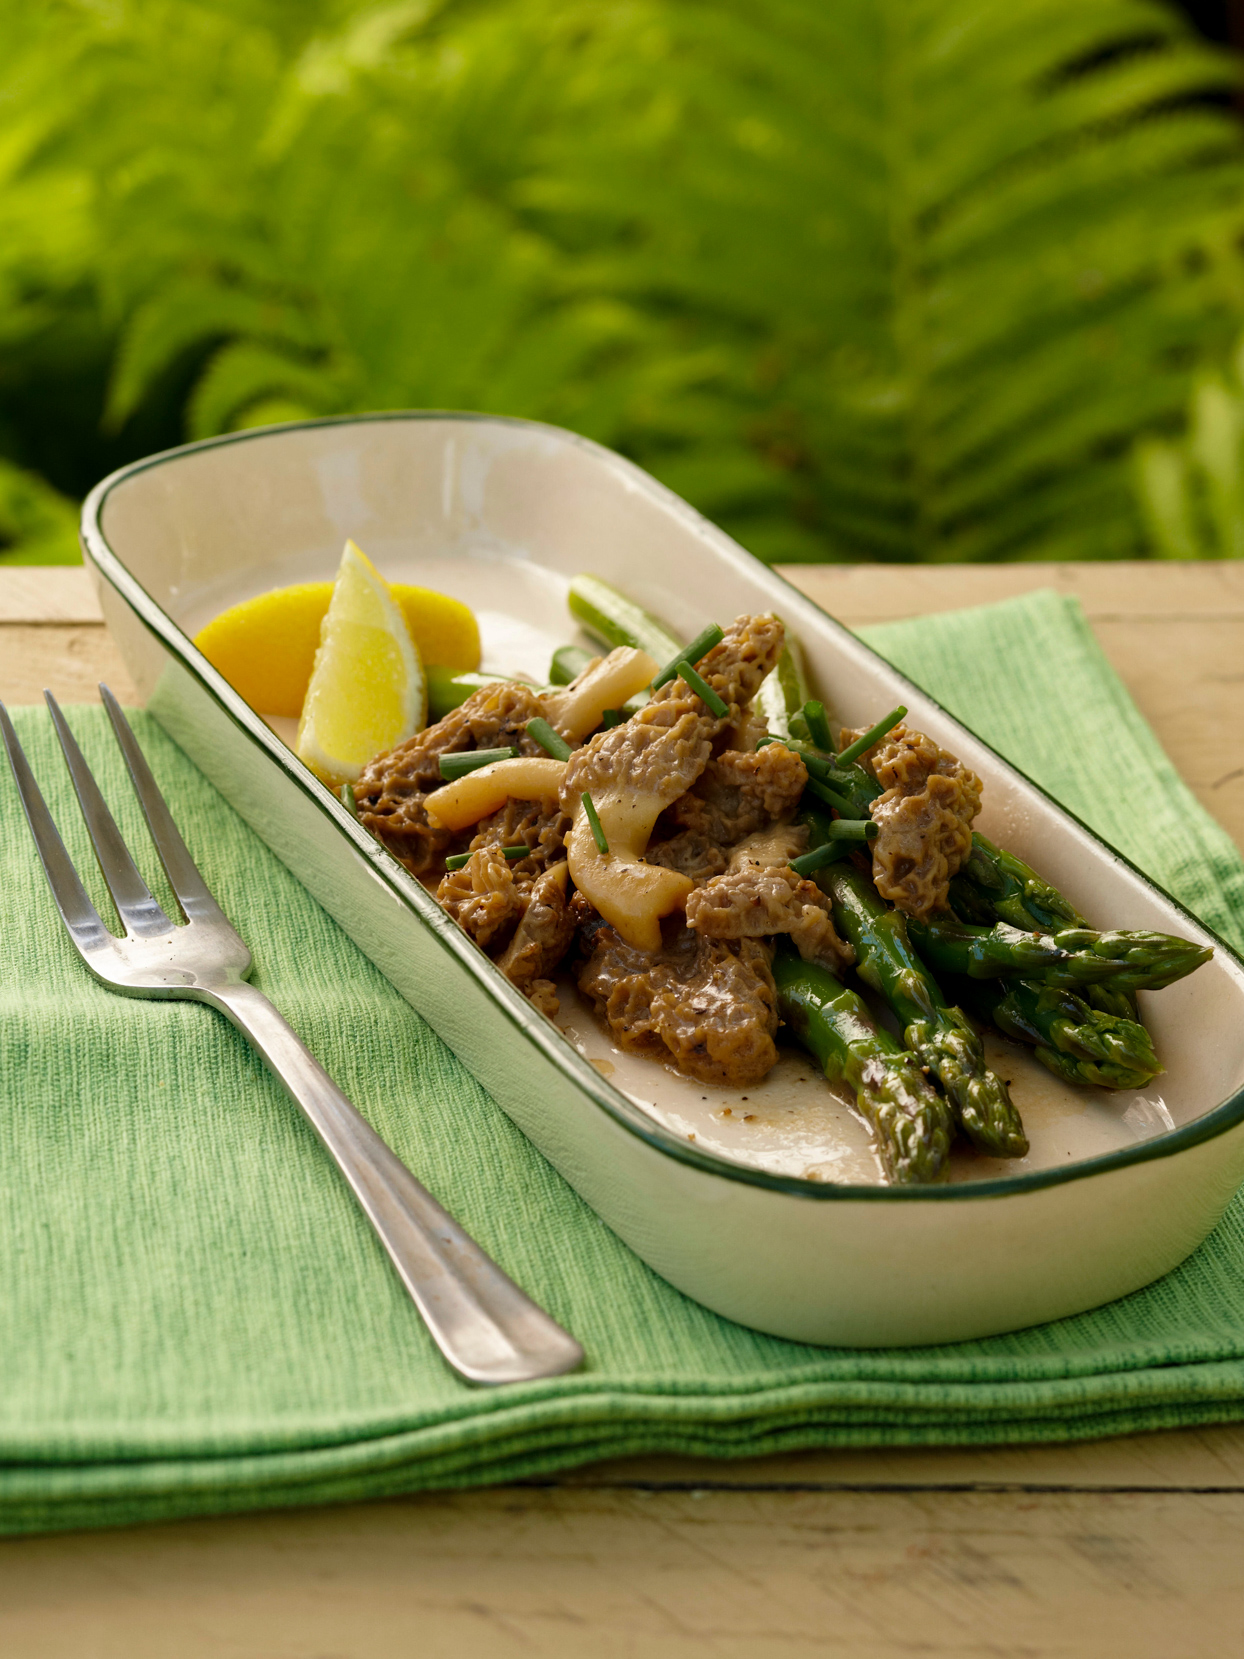 Asparagus and Morels in long serving dish